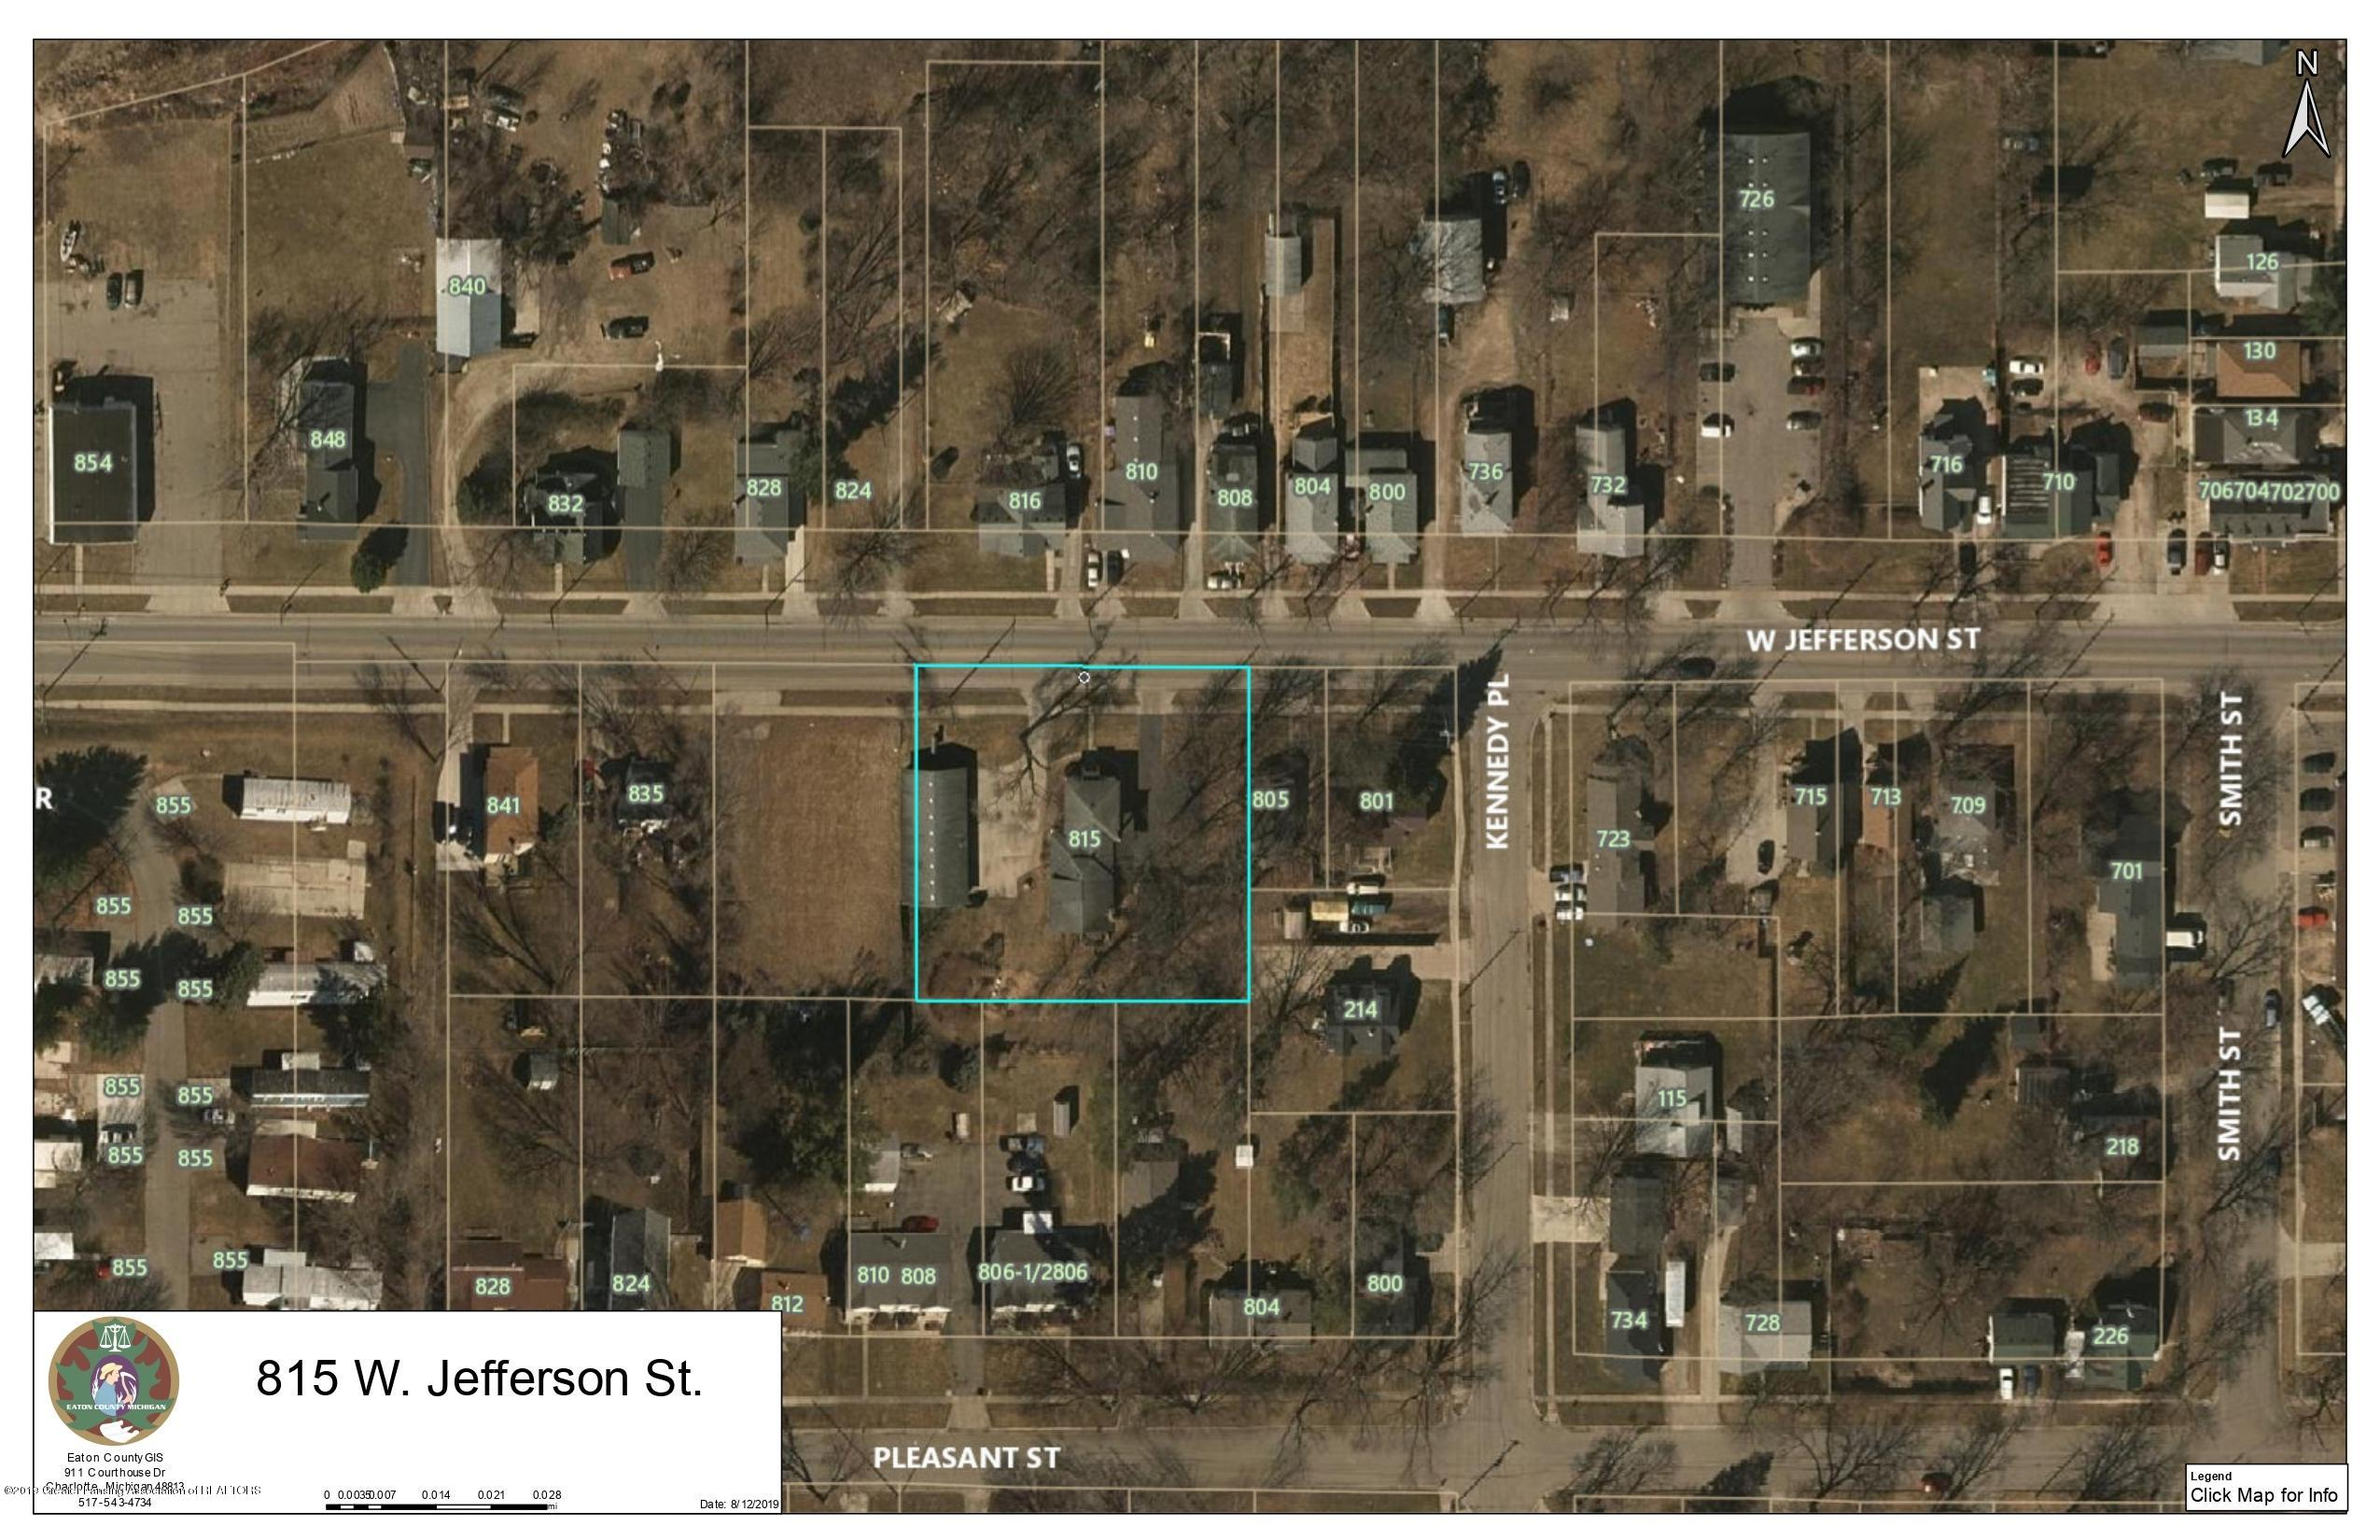 815 W Jefferson St - 815 W. Jefferson - Lot Lines - 37